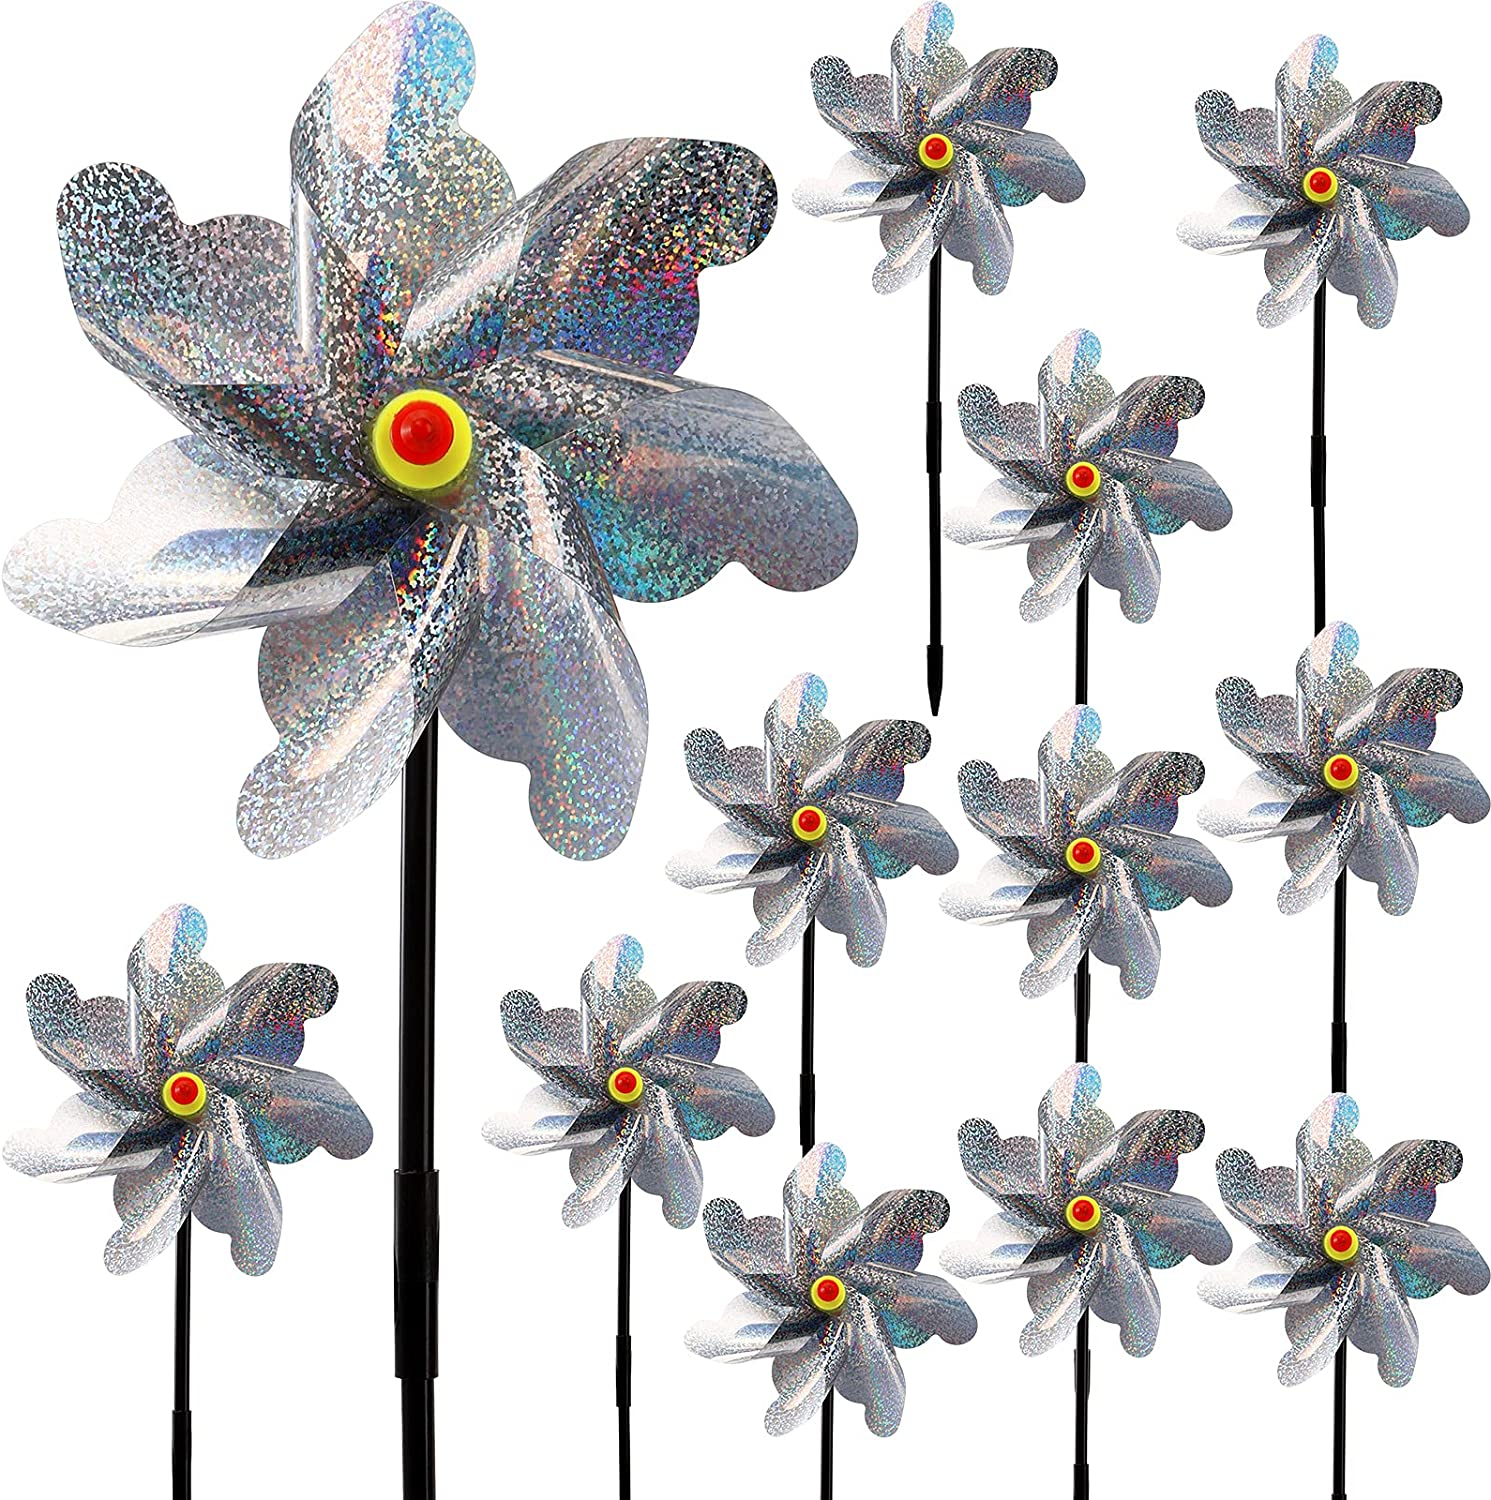 YOUEON 12 Pack Reflective Pinwheels with Stakes, 18 Inch Bird Blinder Repellent Pinwheels, Garden Sparkly Spinners to Scare Birds Away from Yard, Patio, Farm